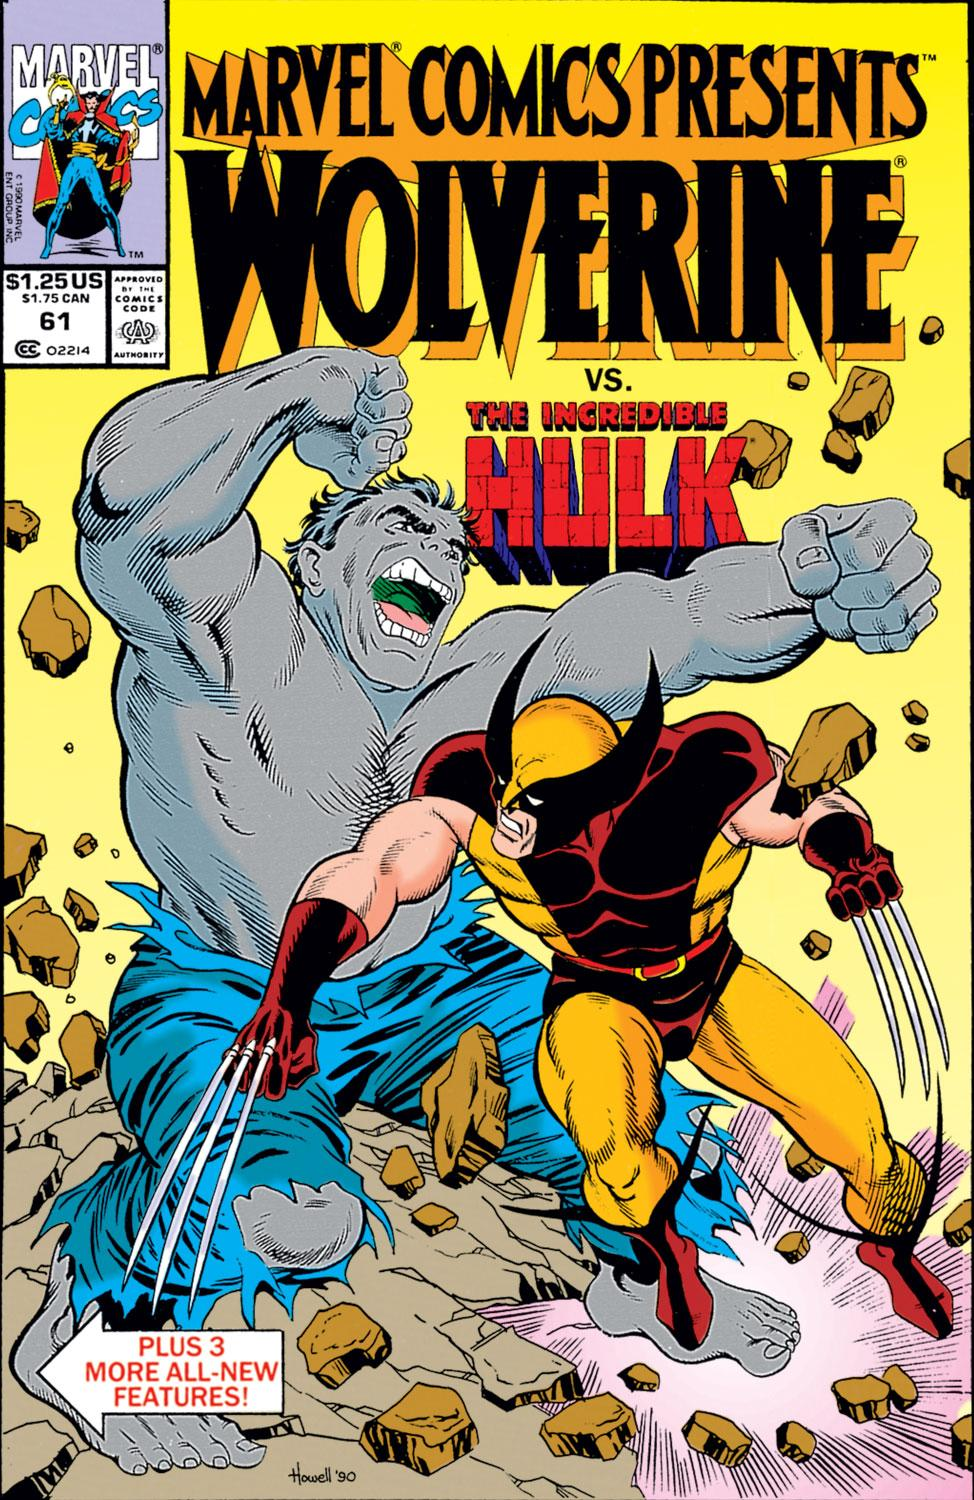 Marvel Comics Presents (1988) #61